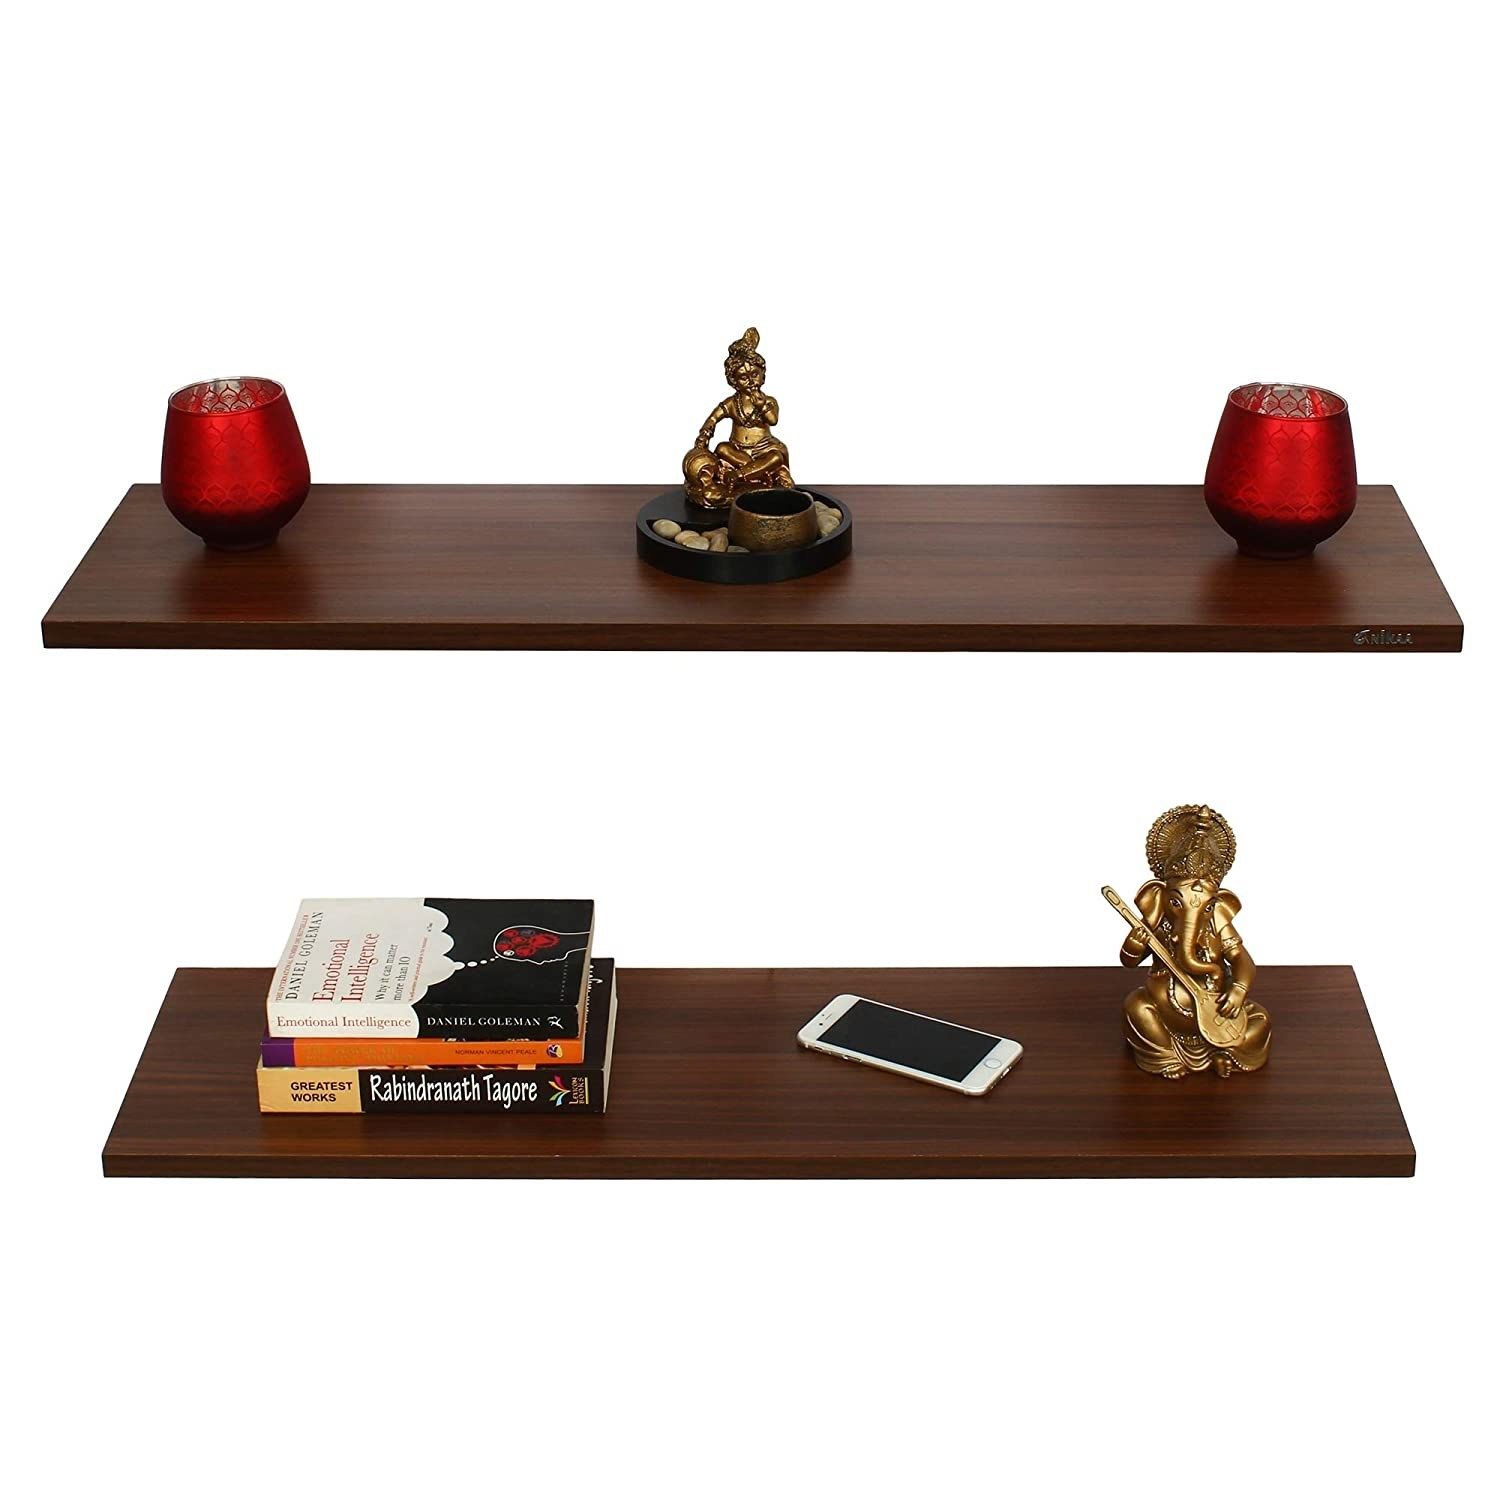 A set of 2 shelves with items on them